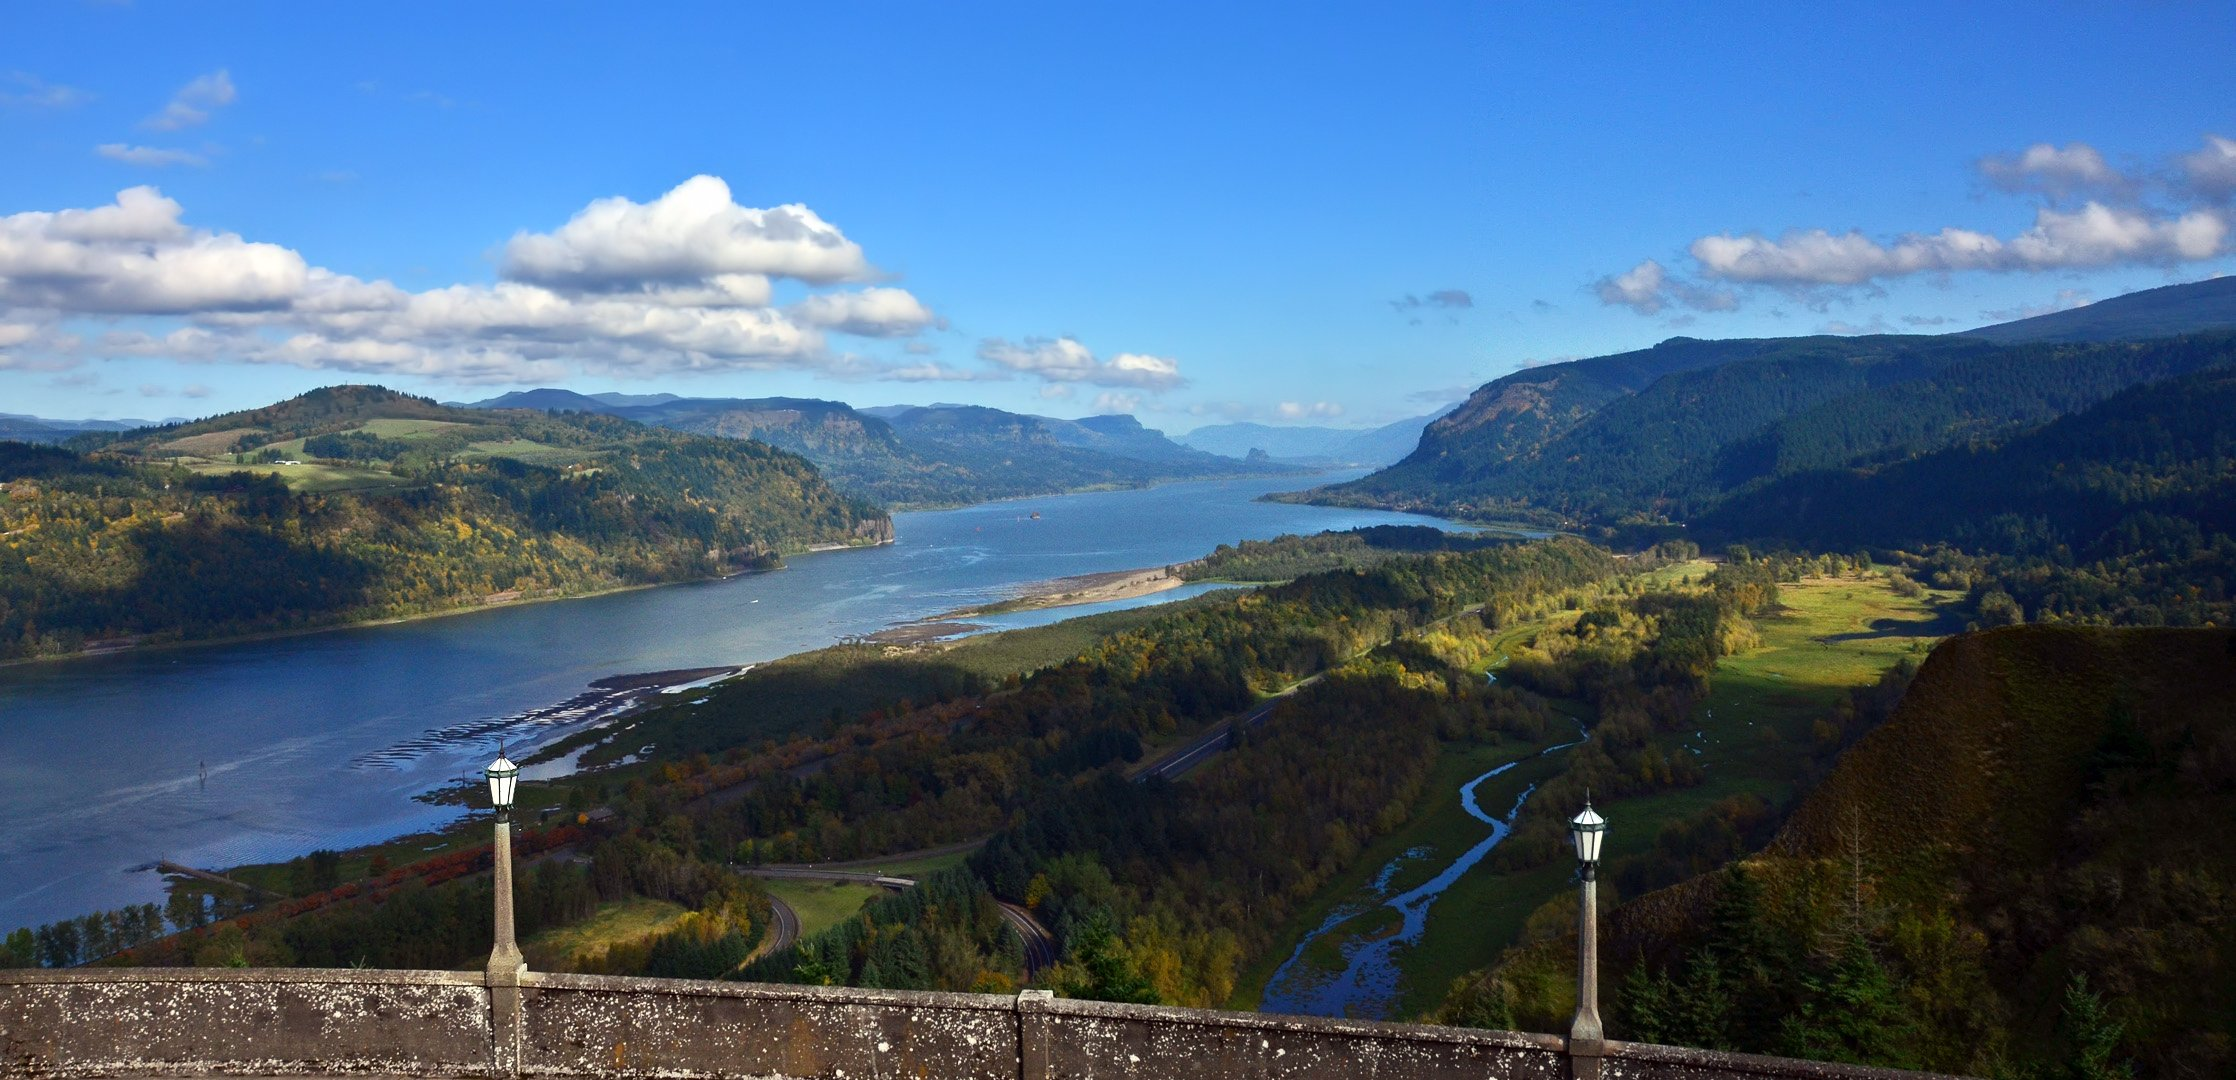 Columbia River Gorge bike ride week « Ashland Daily Photo